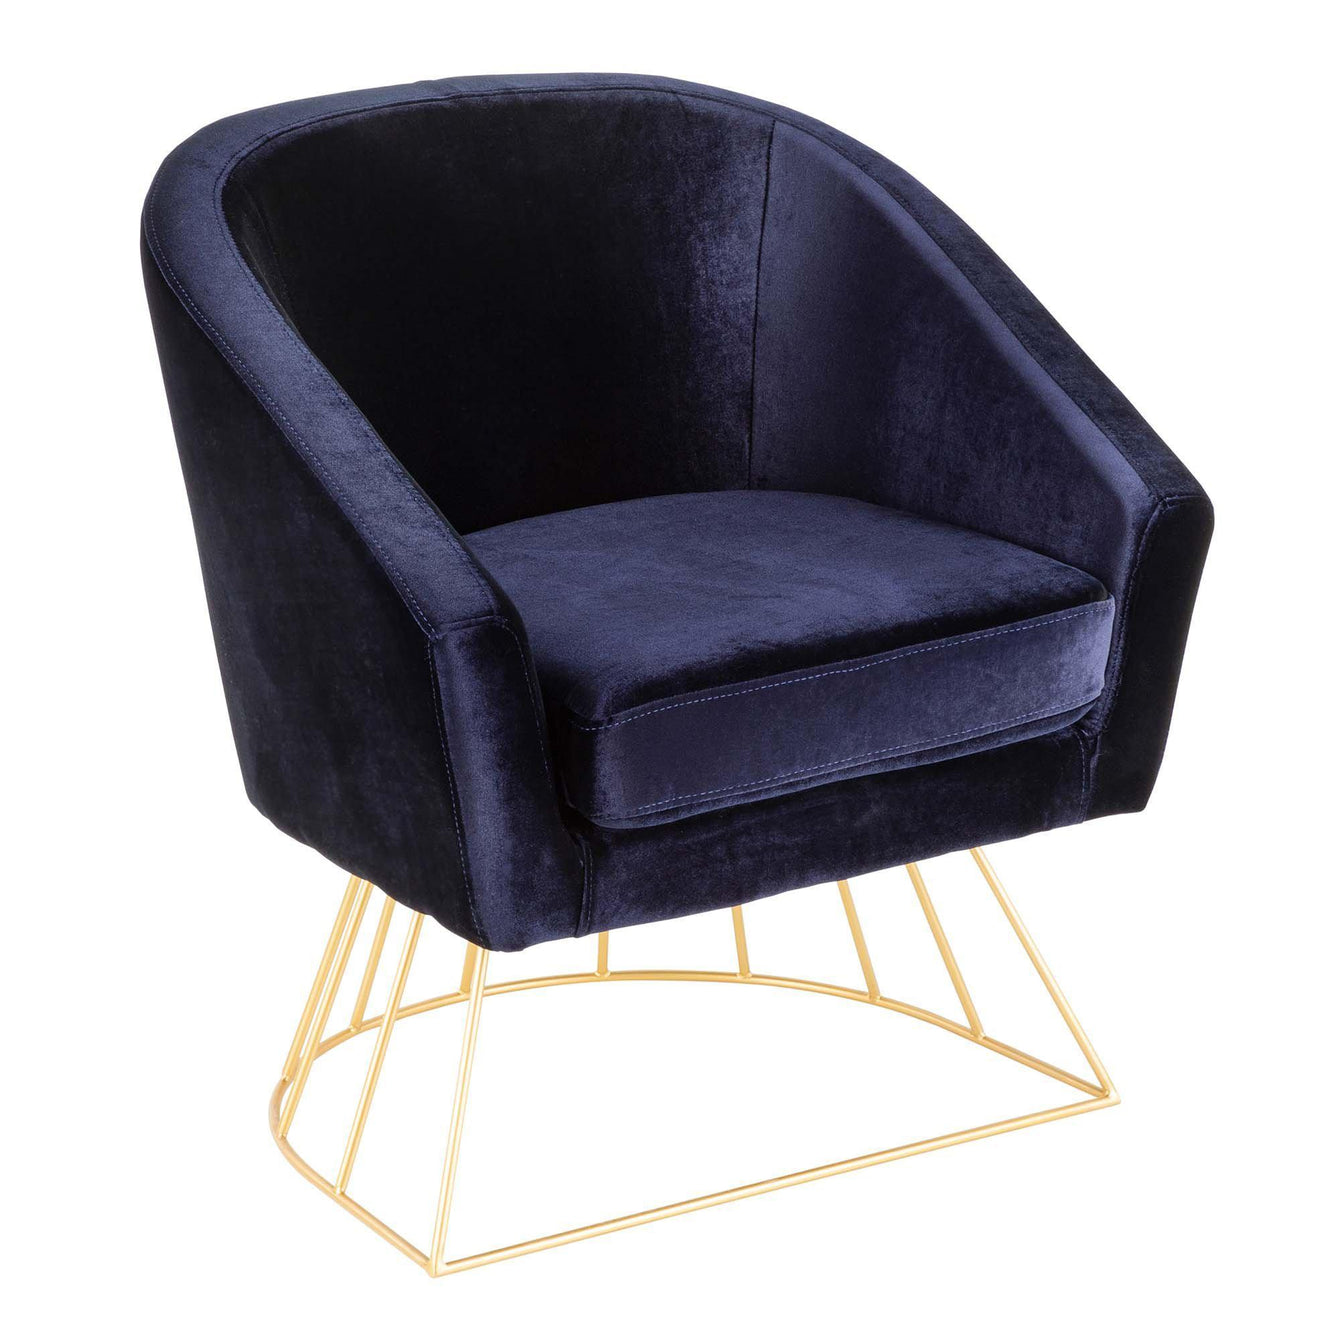 Canary Velvet Tub Club Chair in Deep Blue  sc 1 st  Peccadilly & Canary Velvet Tub Club Chair in Deep Blue | LUMISOURCE | Home ...